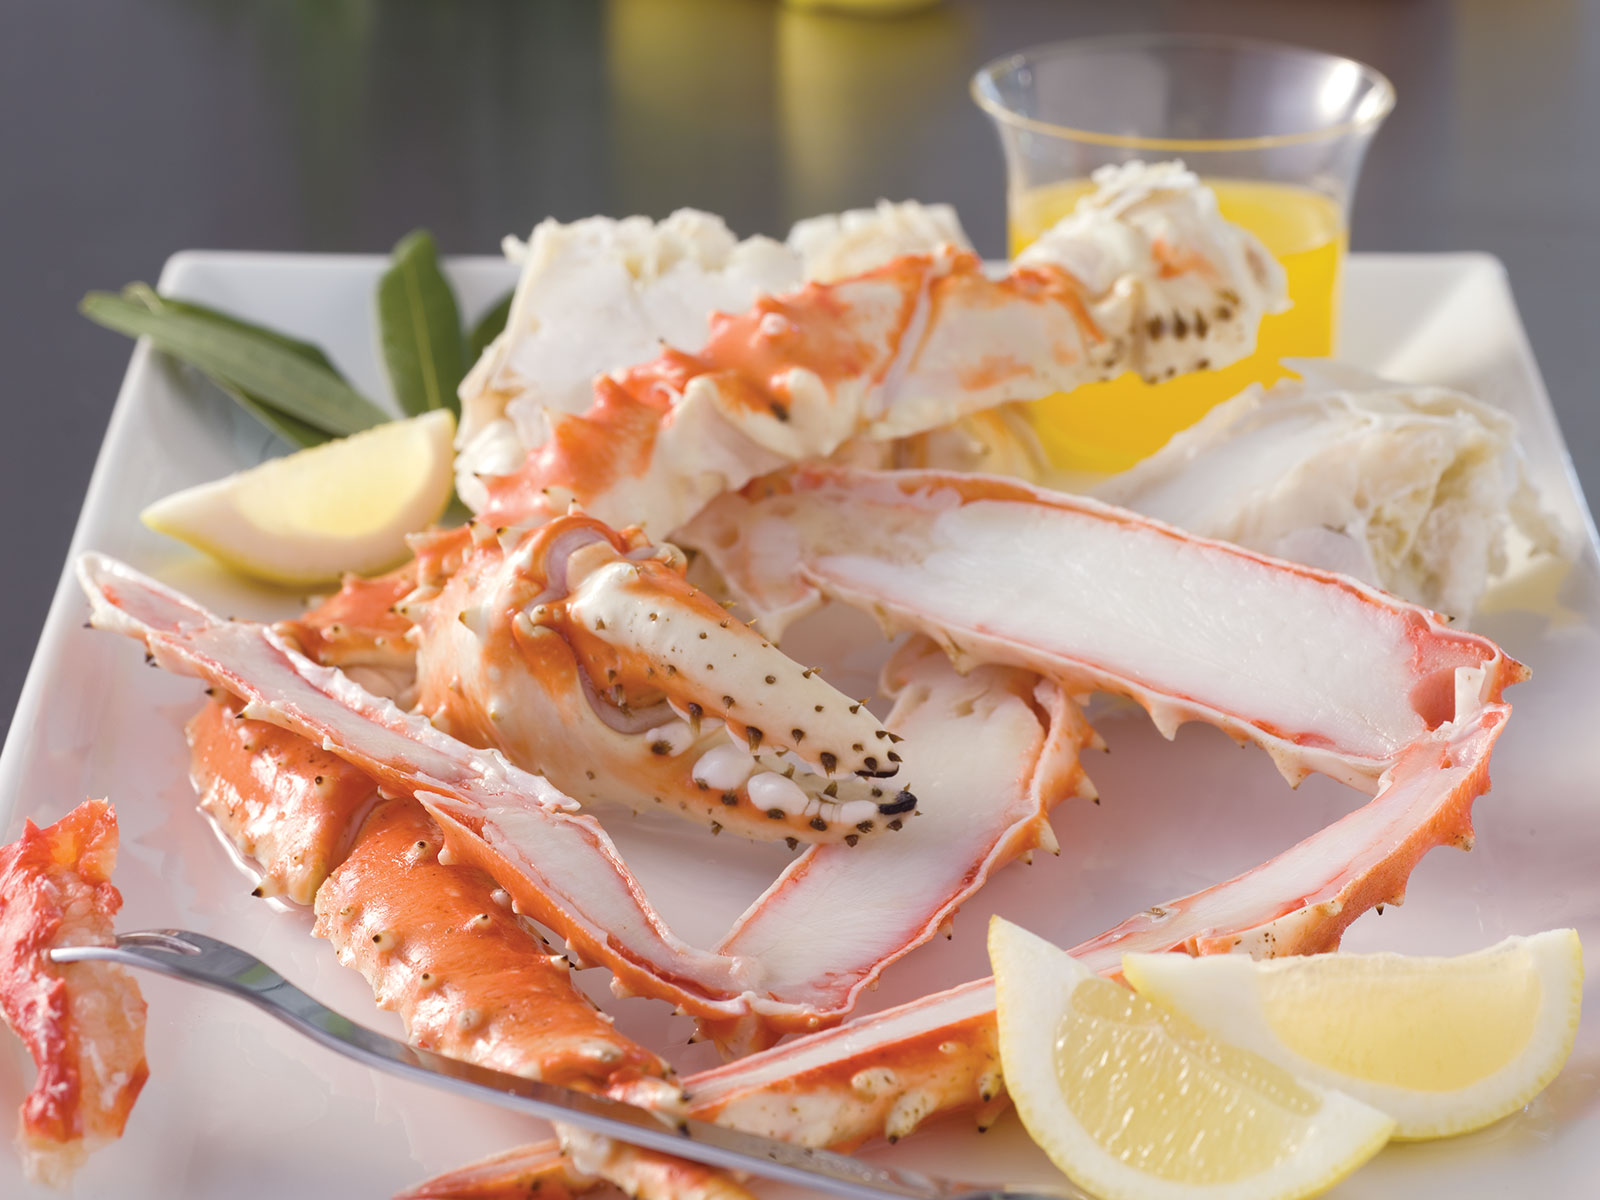 Red King Crab Legs & Claws 16-20 Count Splits (1/10 lb) 488917